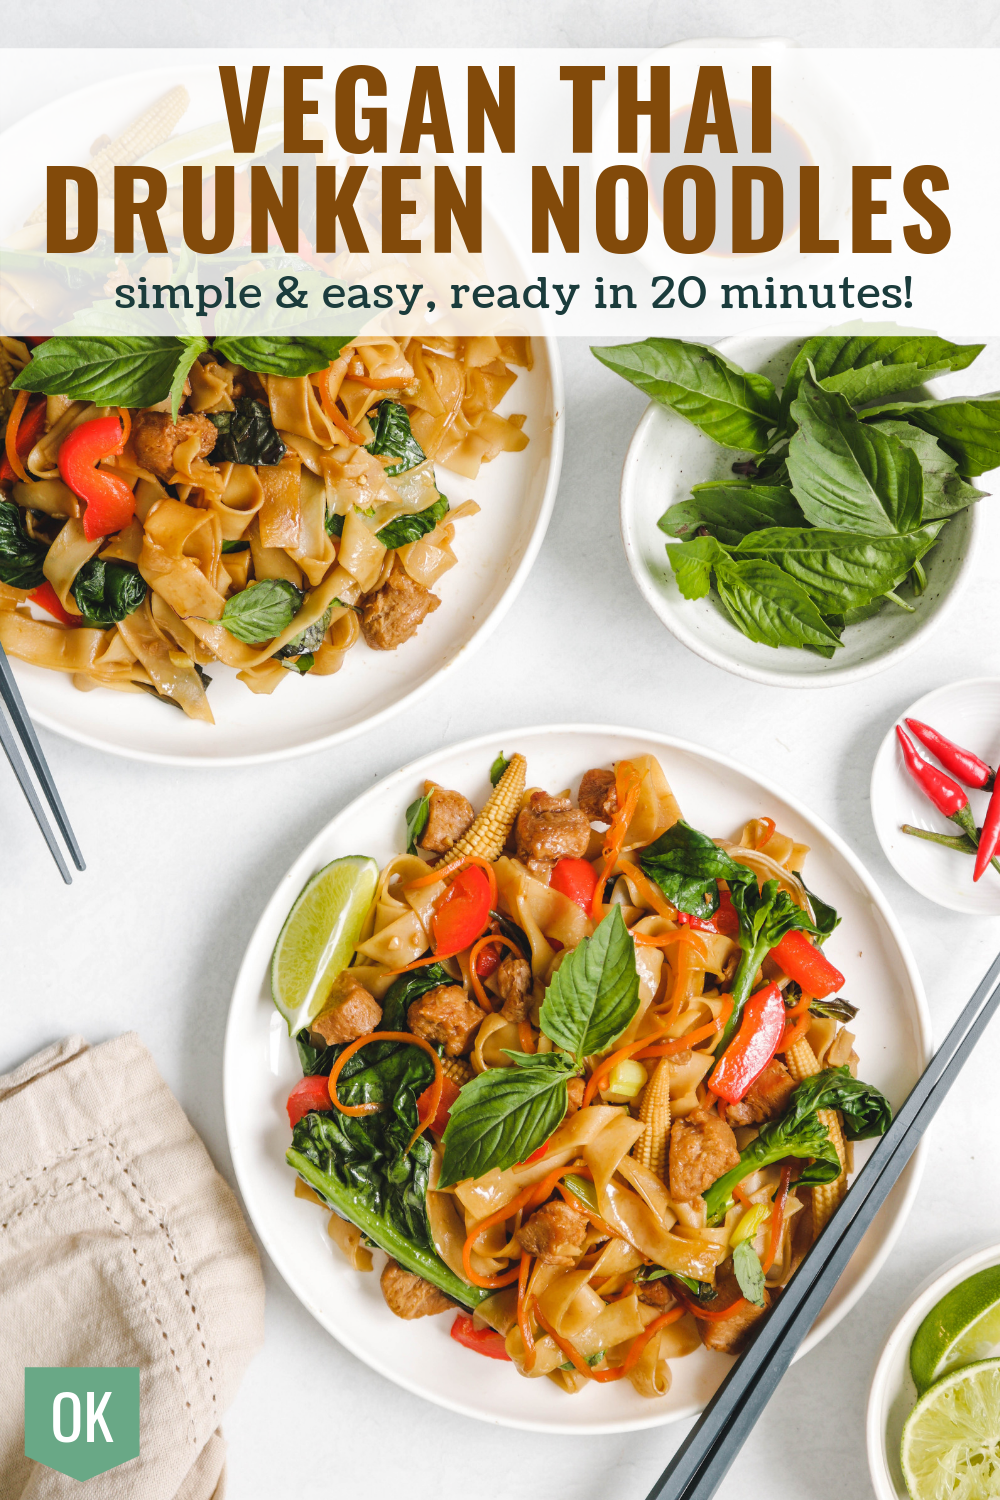 vegan thai drunken noodles on white plate